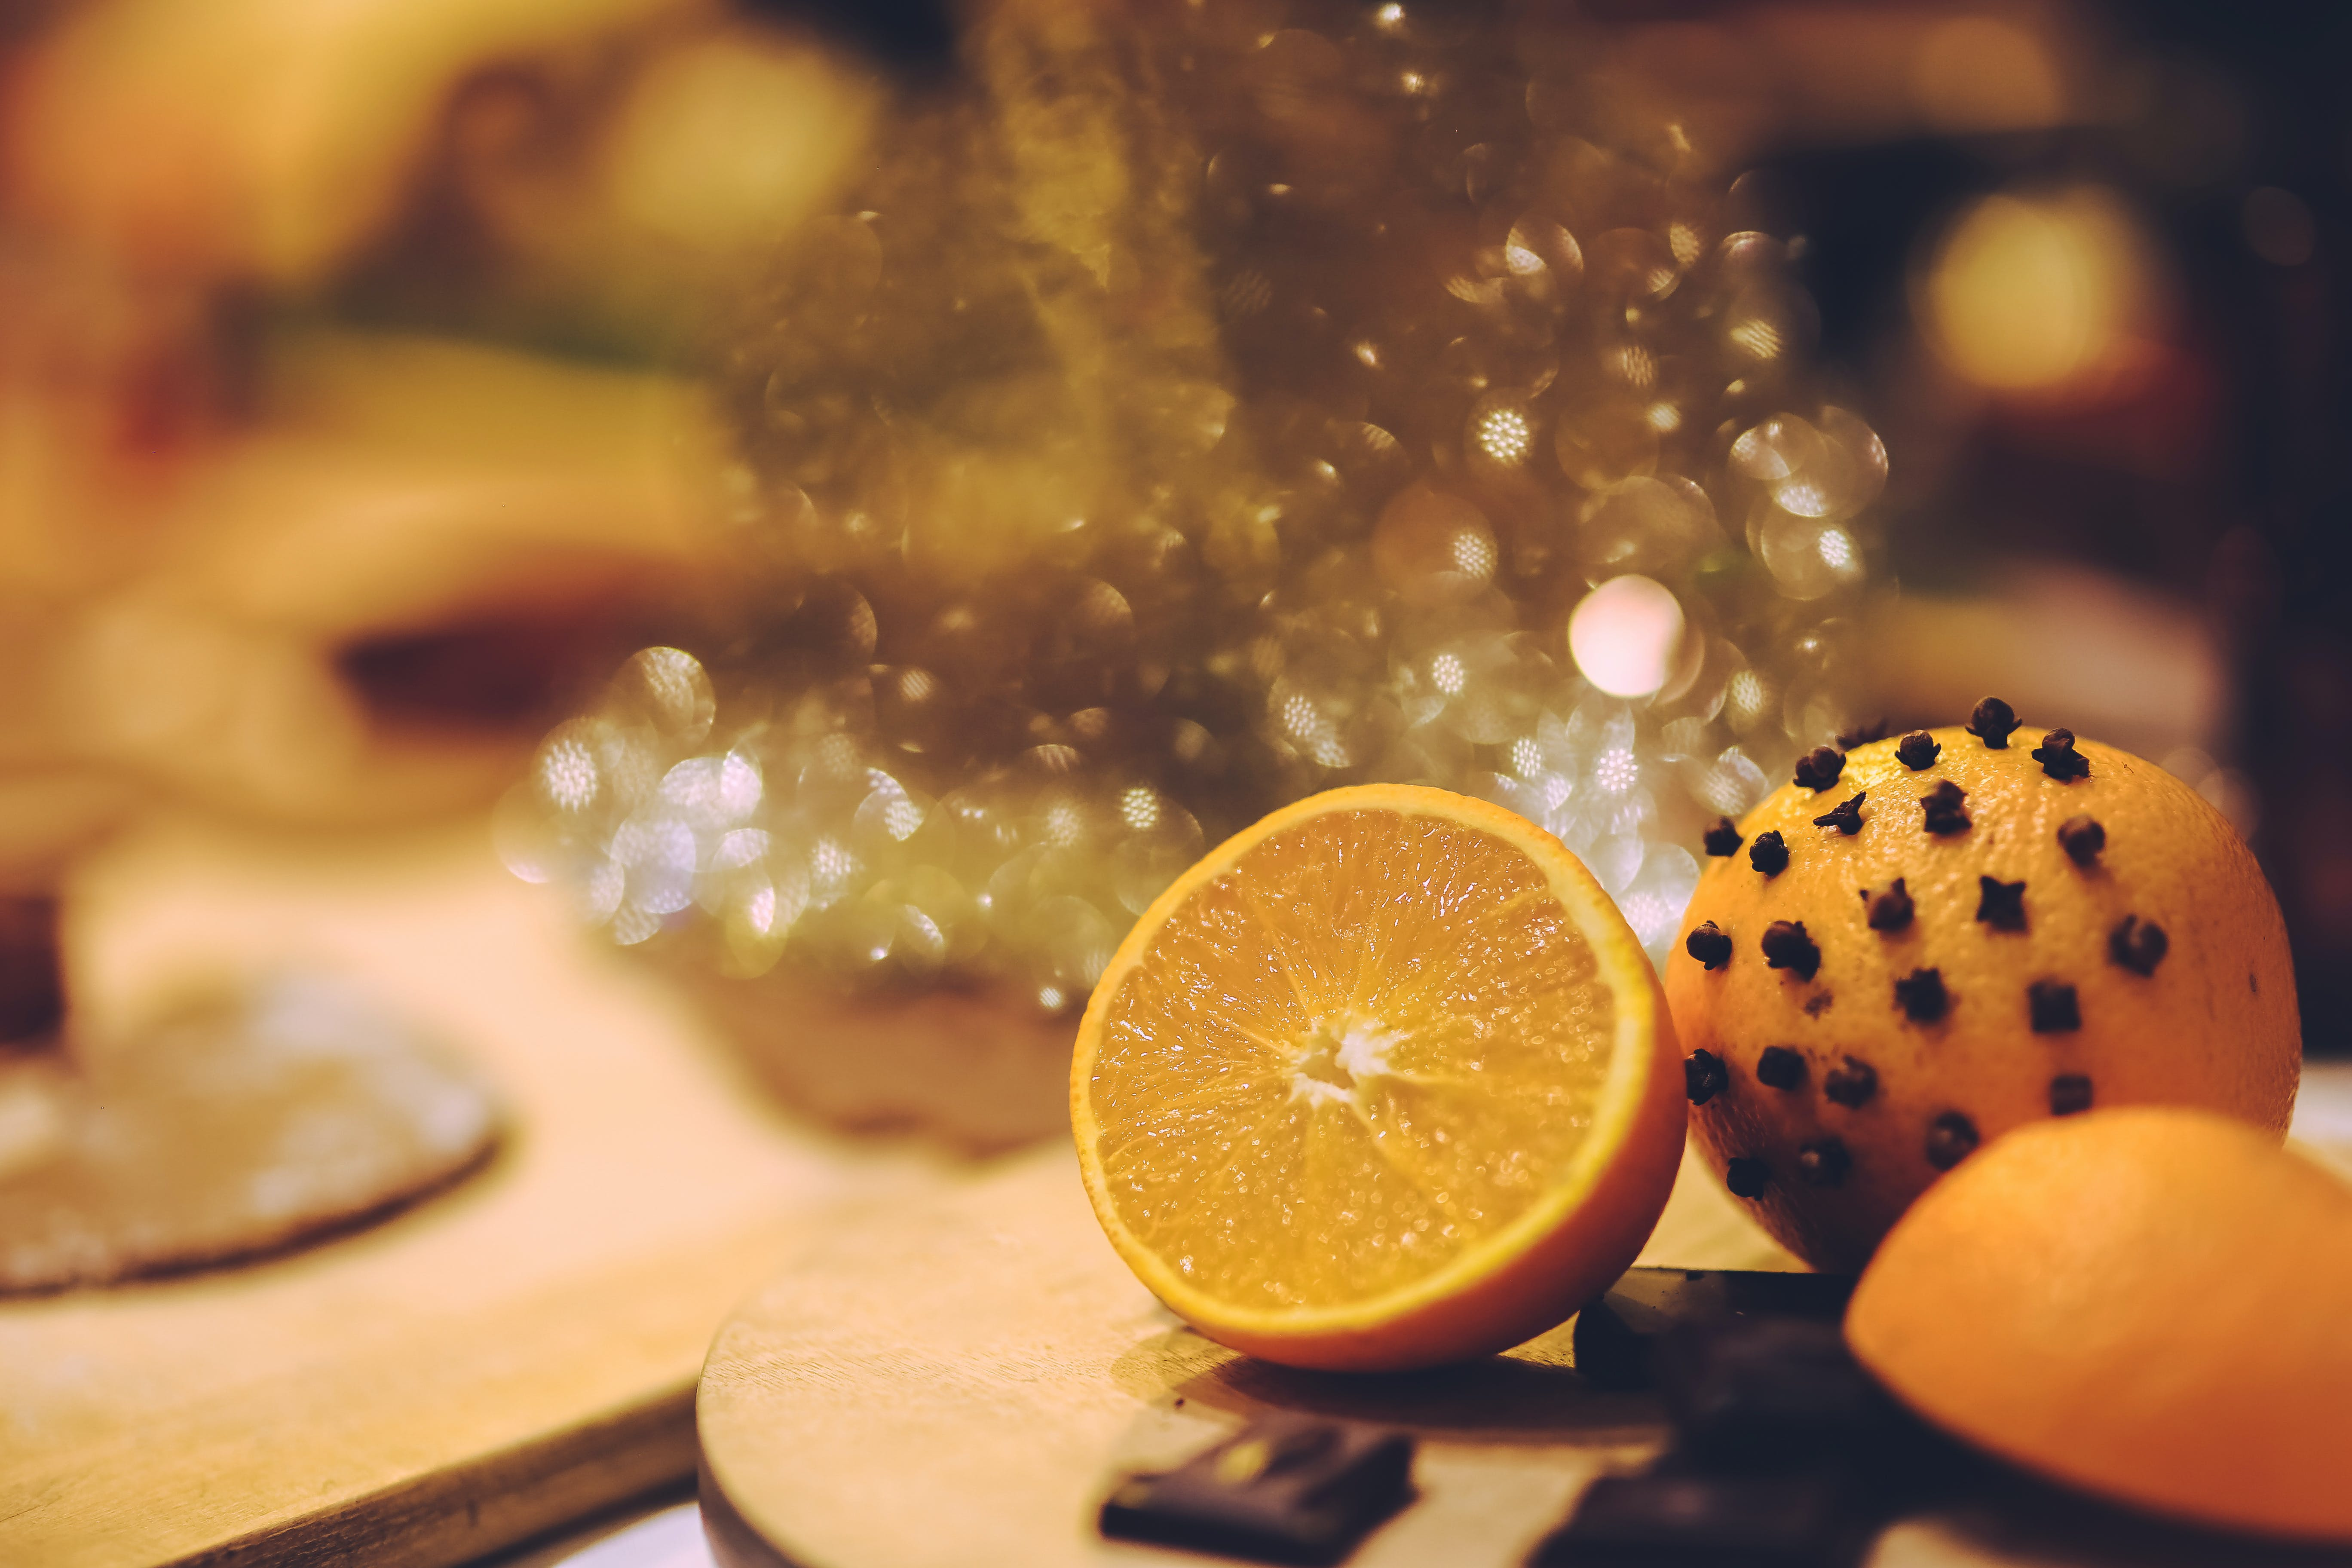 Orange with Cloves